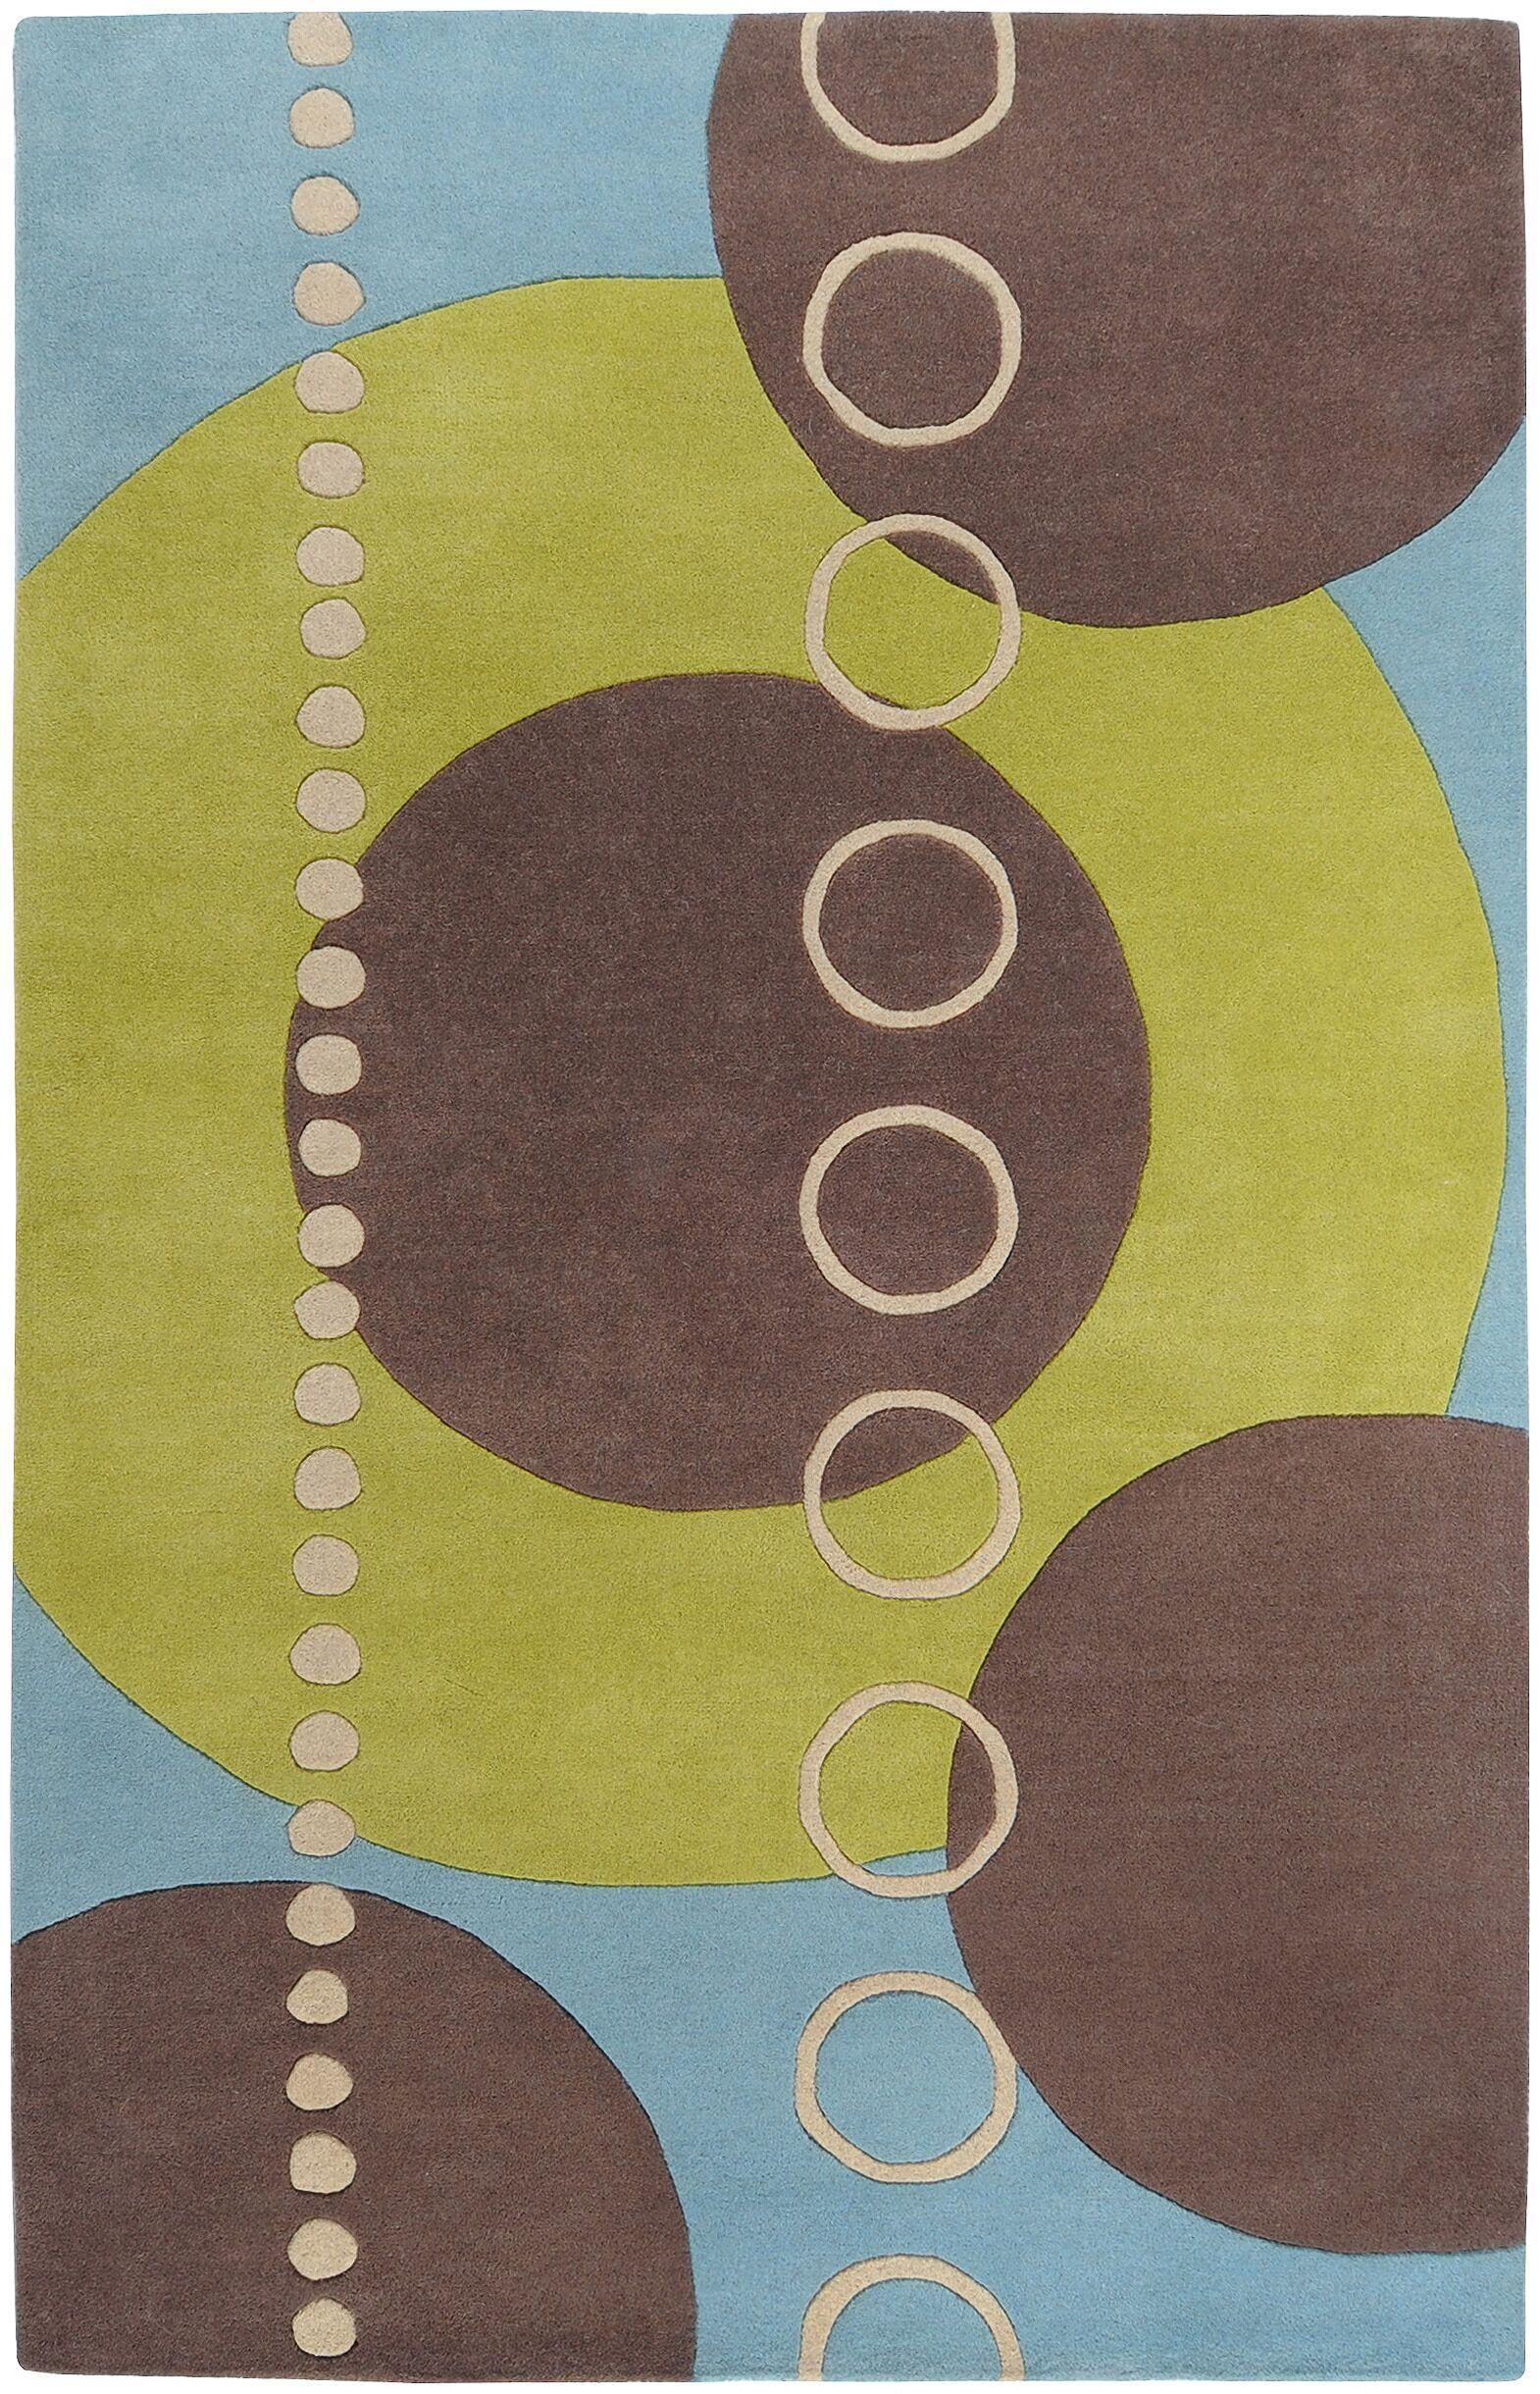 Dewald Sky/Brown Circle Area Rug Rug Size: Round 8'